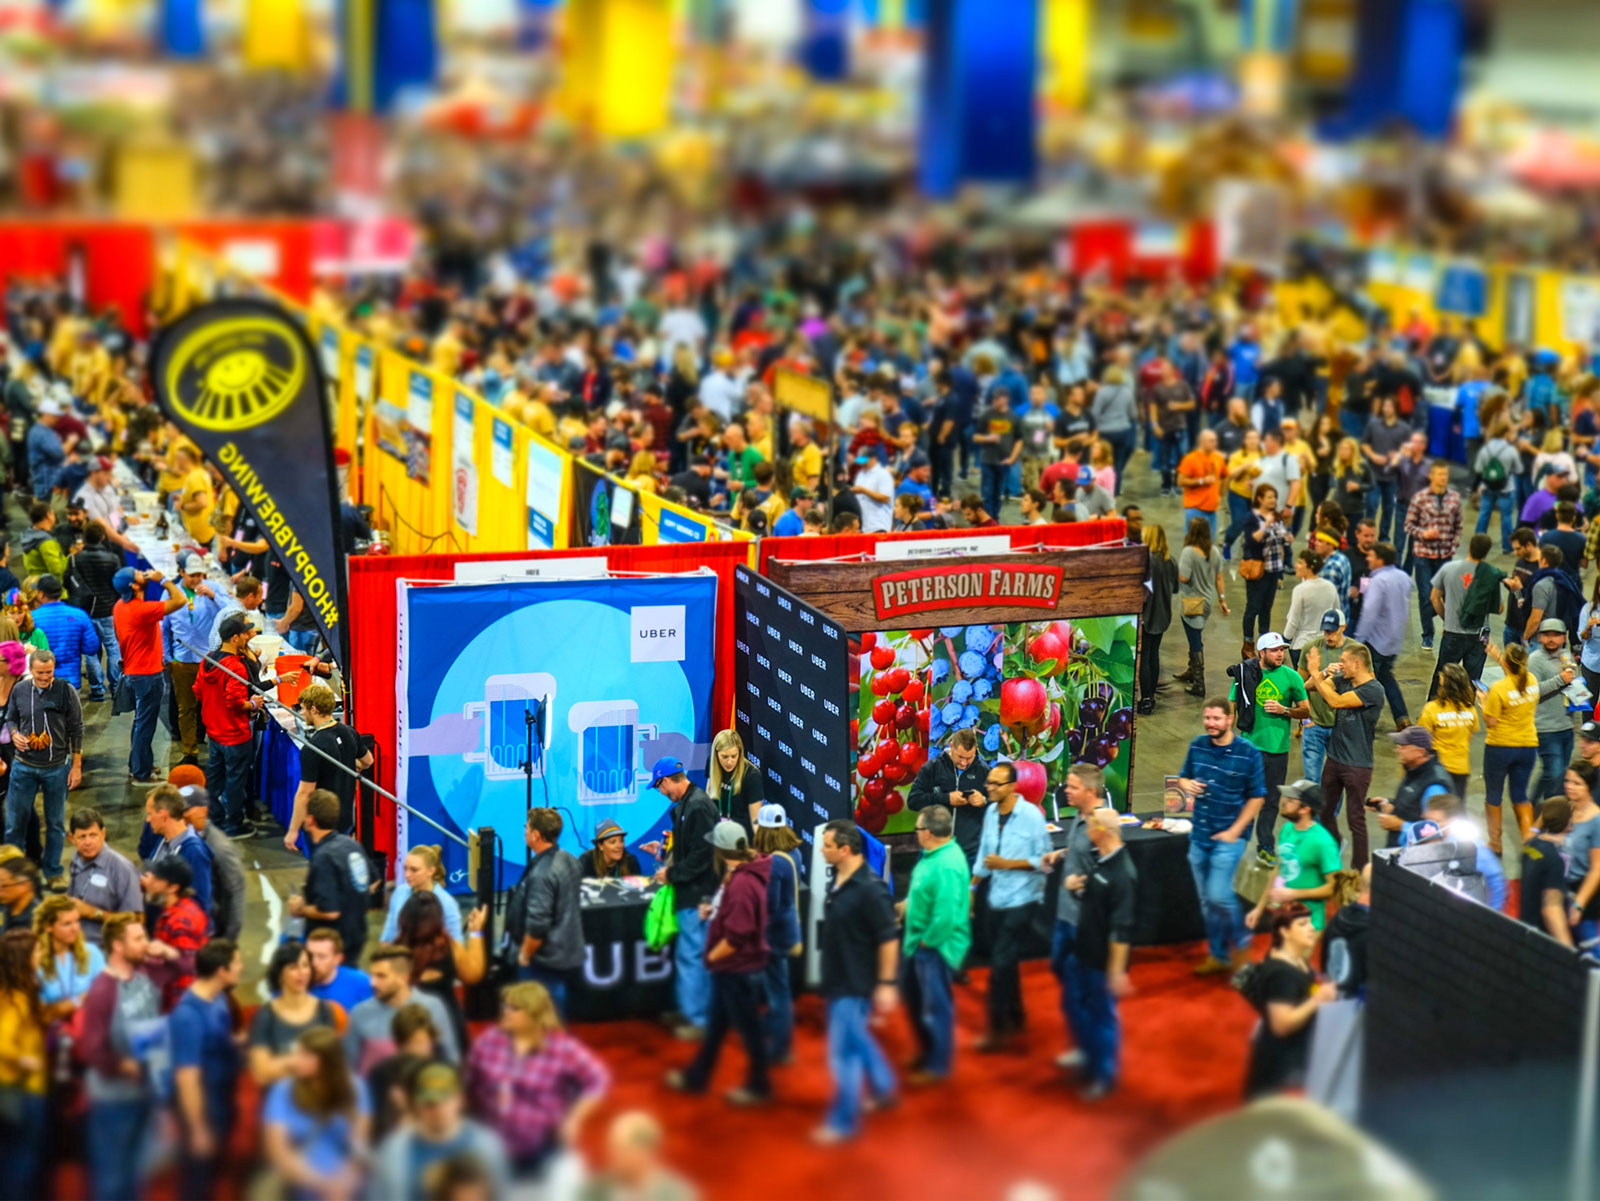 How to Get Tickets to the 2018 Great American Beer Festival